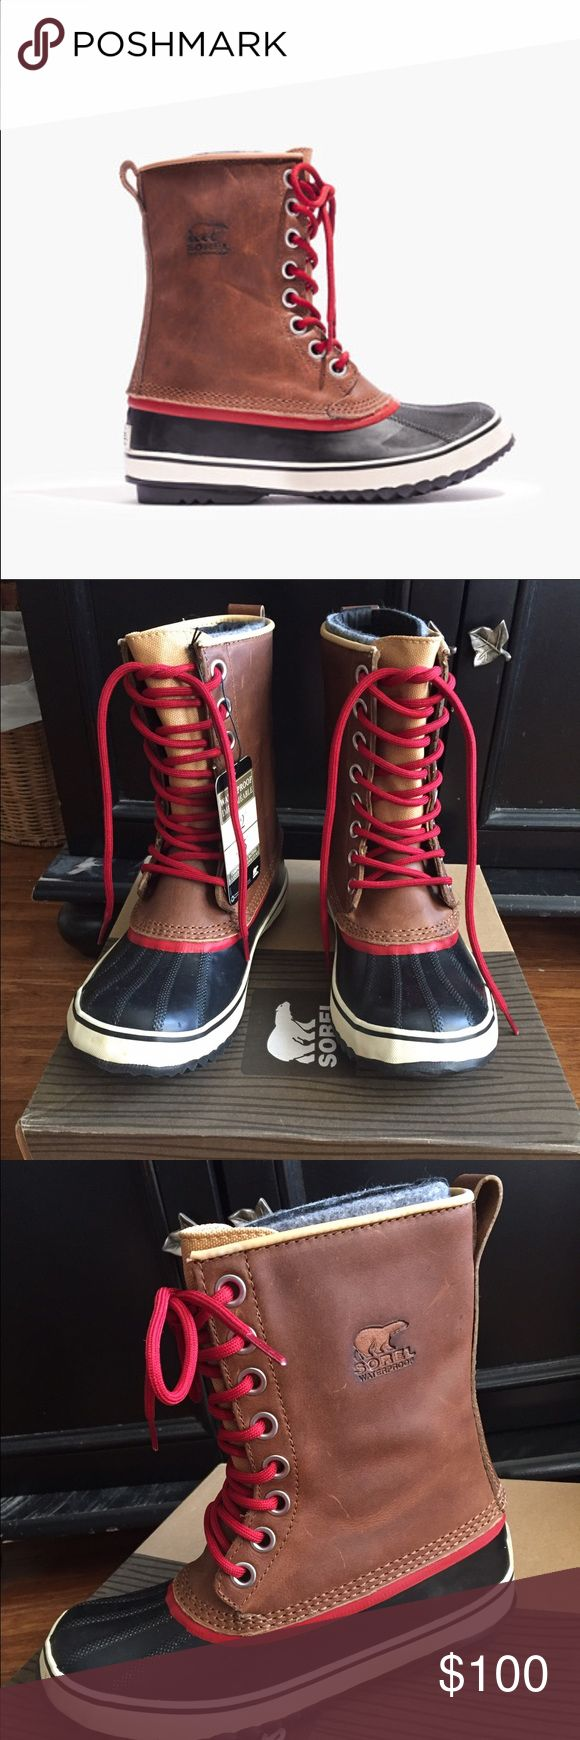 Madewell Sorel snow boots! ❄️ Brand new Sorel boots! Bought these at Madewell and never worn! Red shoe lace details that makes the boots perfect for the holidays! Tags still attached! Great gift  for the X-mas! Price is firm. Madewell Shoes Winter & Rain Boots